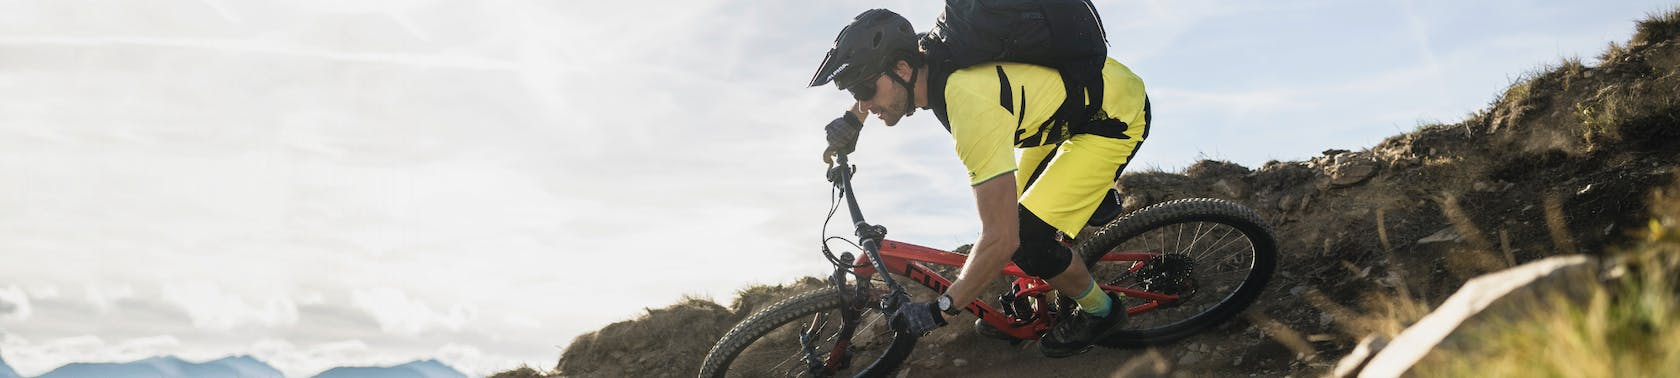 accessori mountainbike